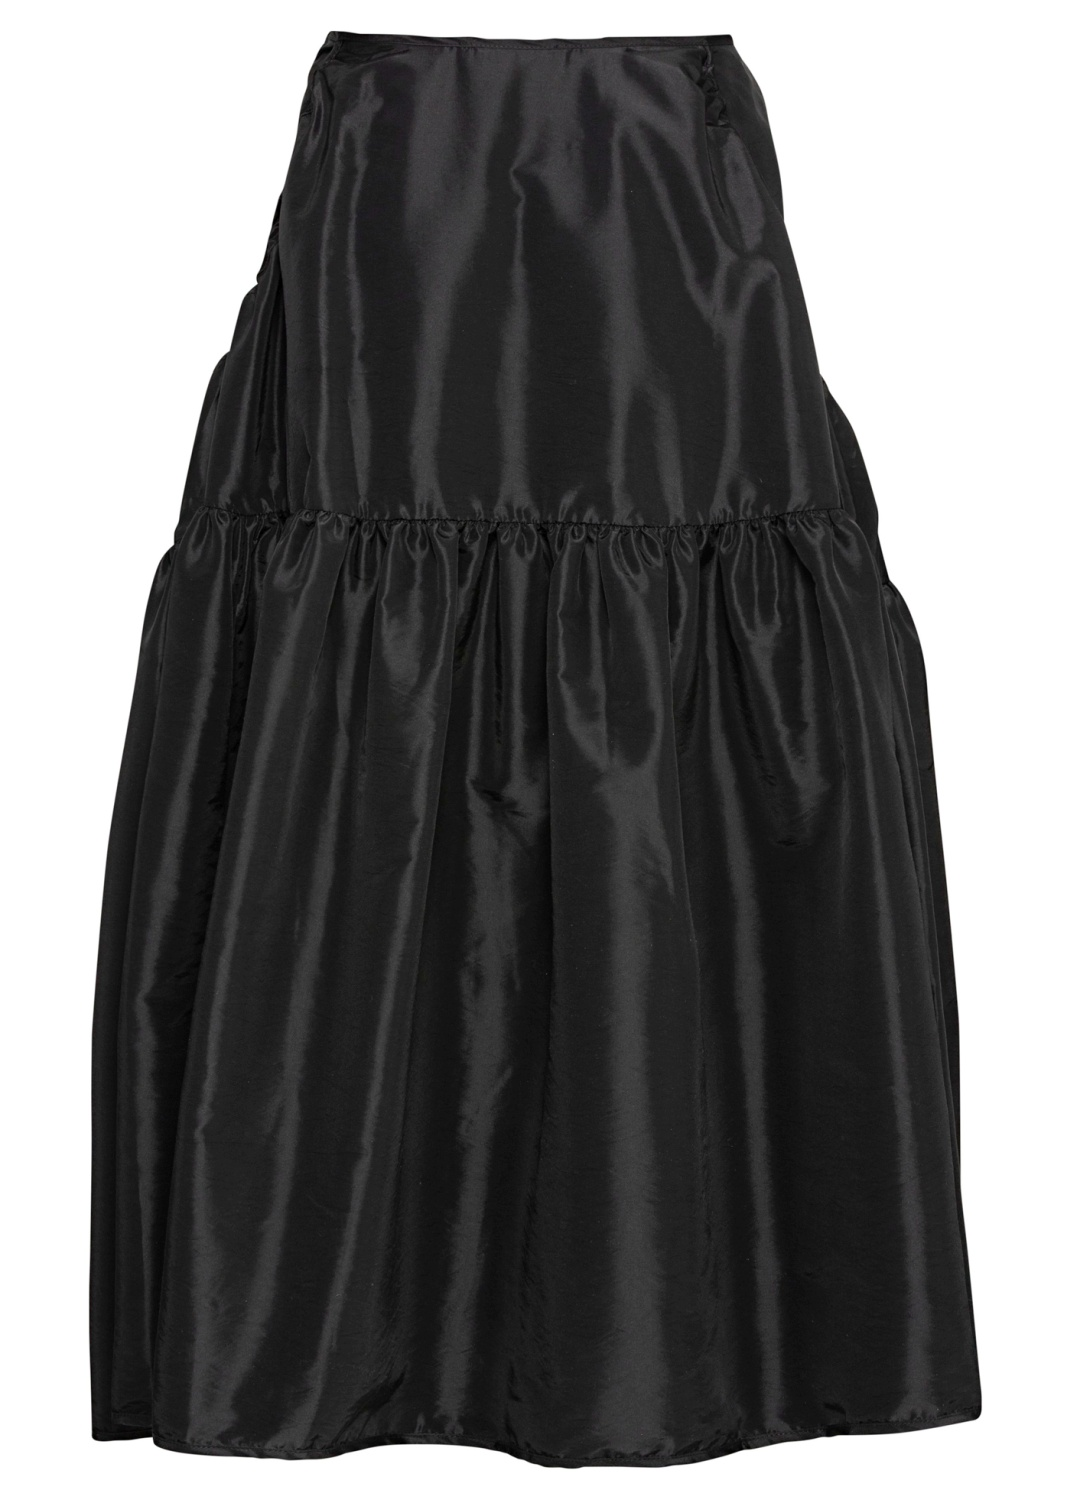 PANEL SKIRT WITH WIDE POCKETS image number 1